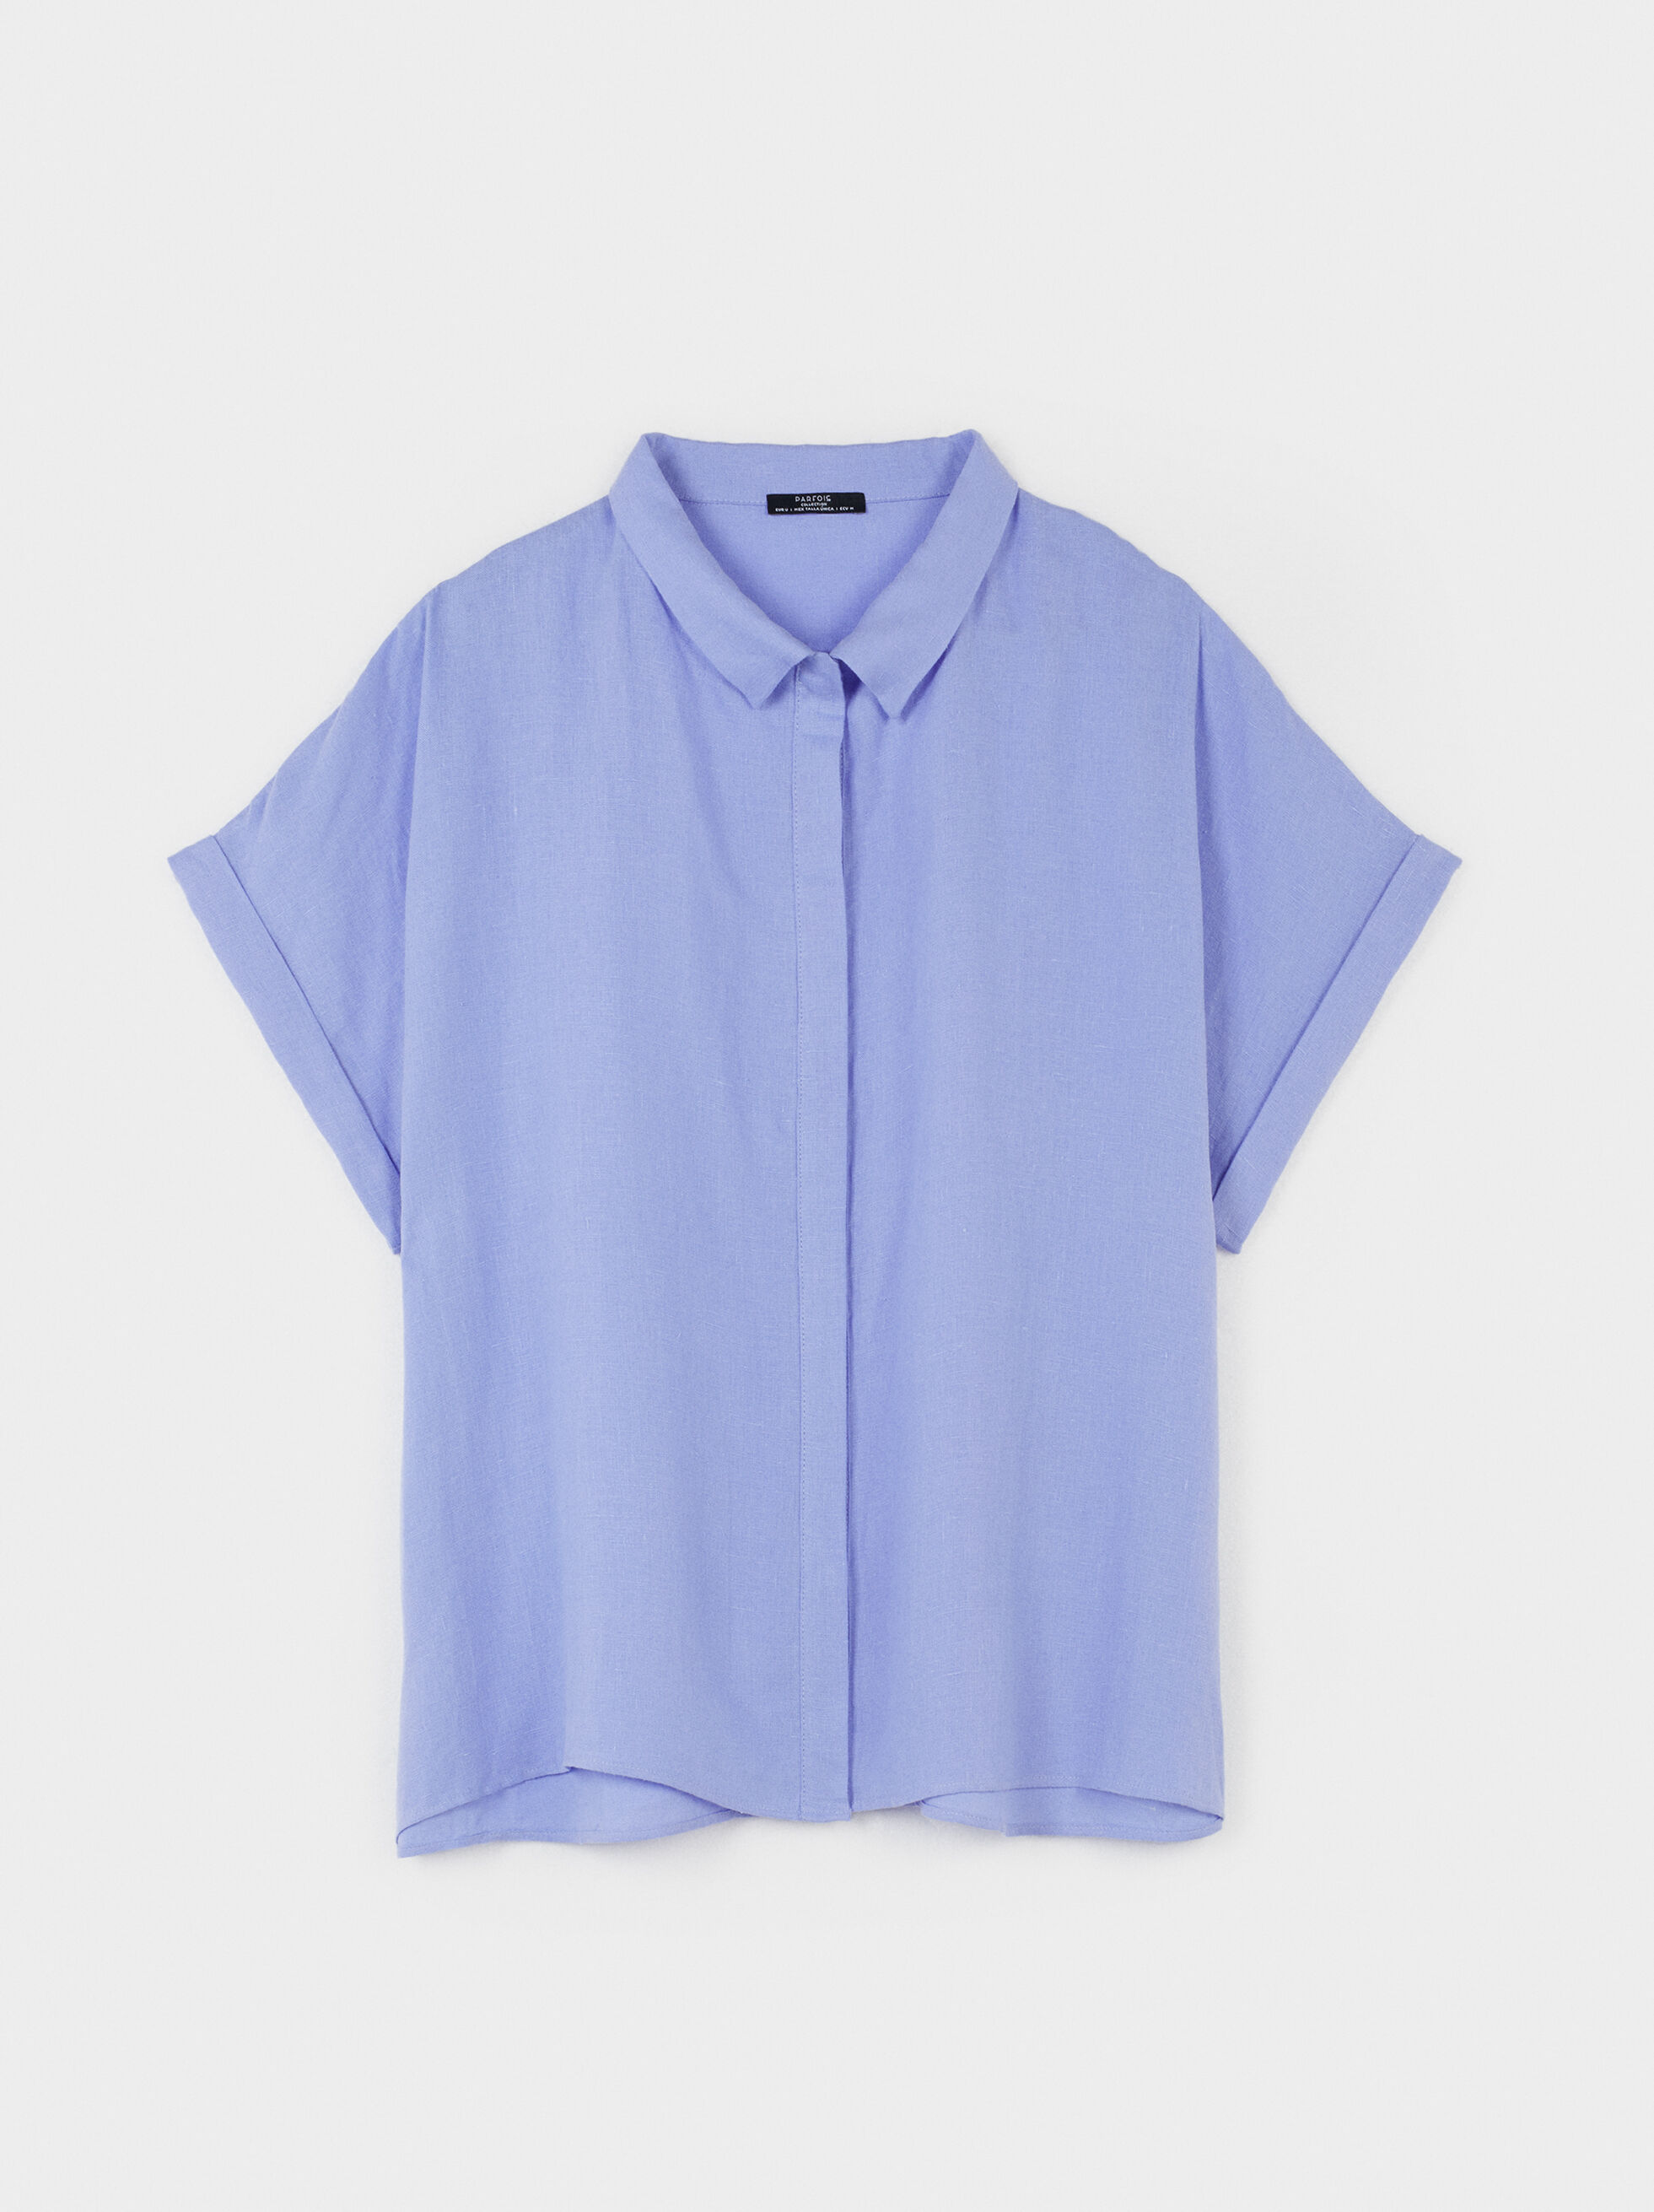 Oversized Shirt, Blue, hi-res